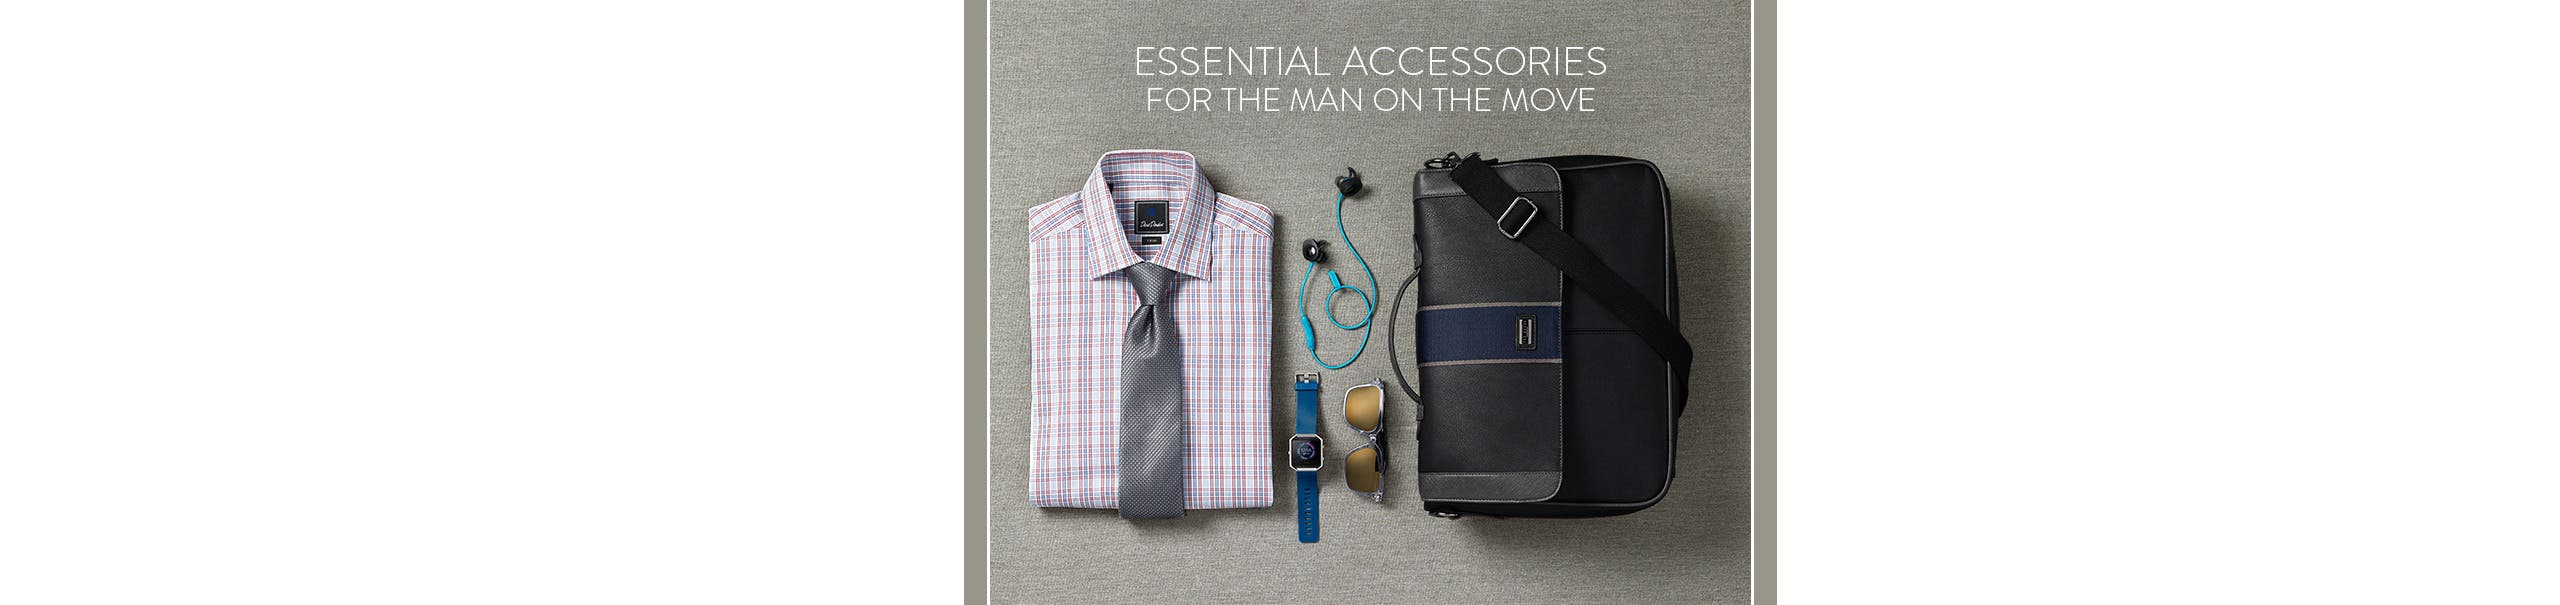 Essential accessories for the man on the move.